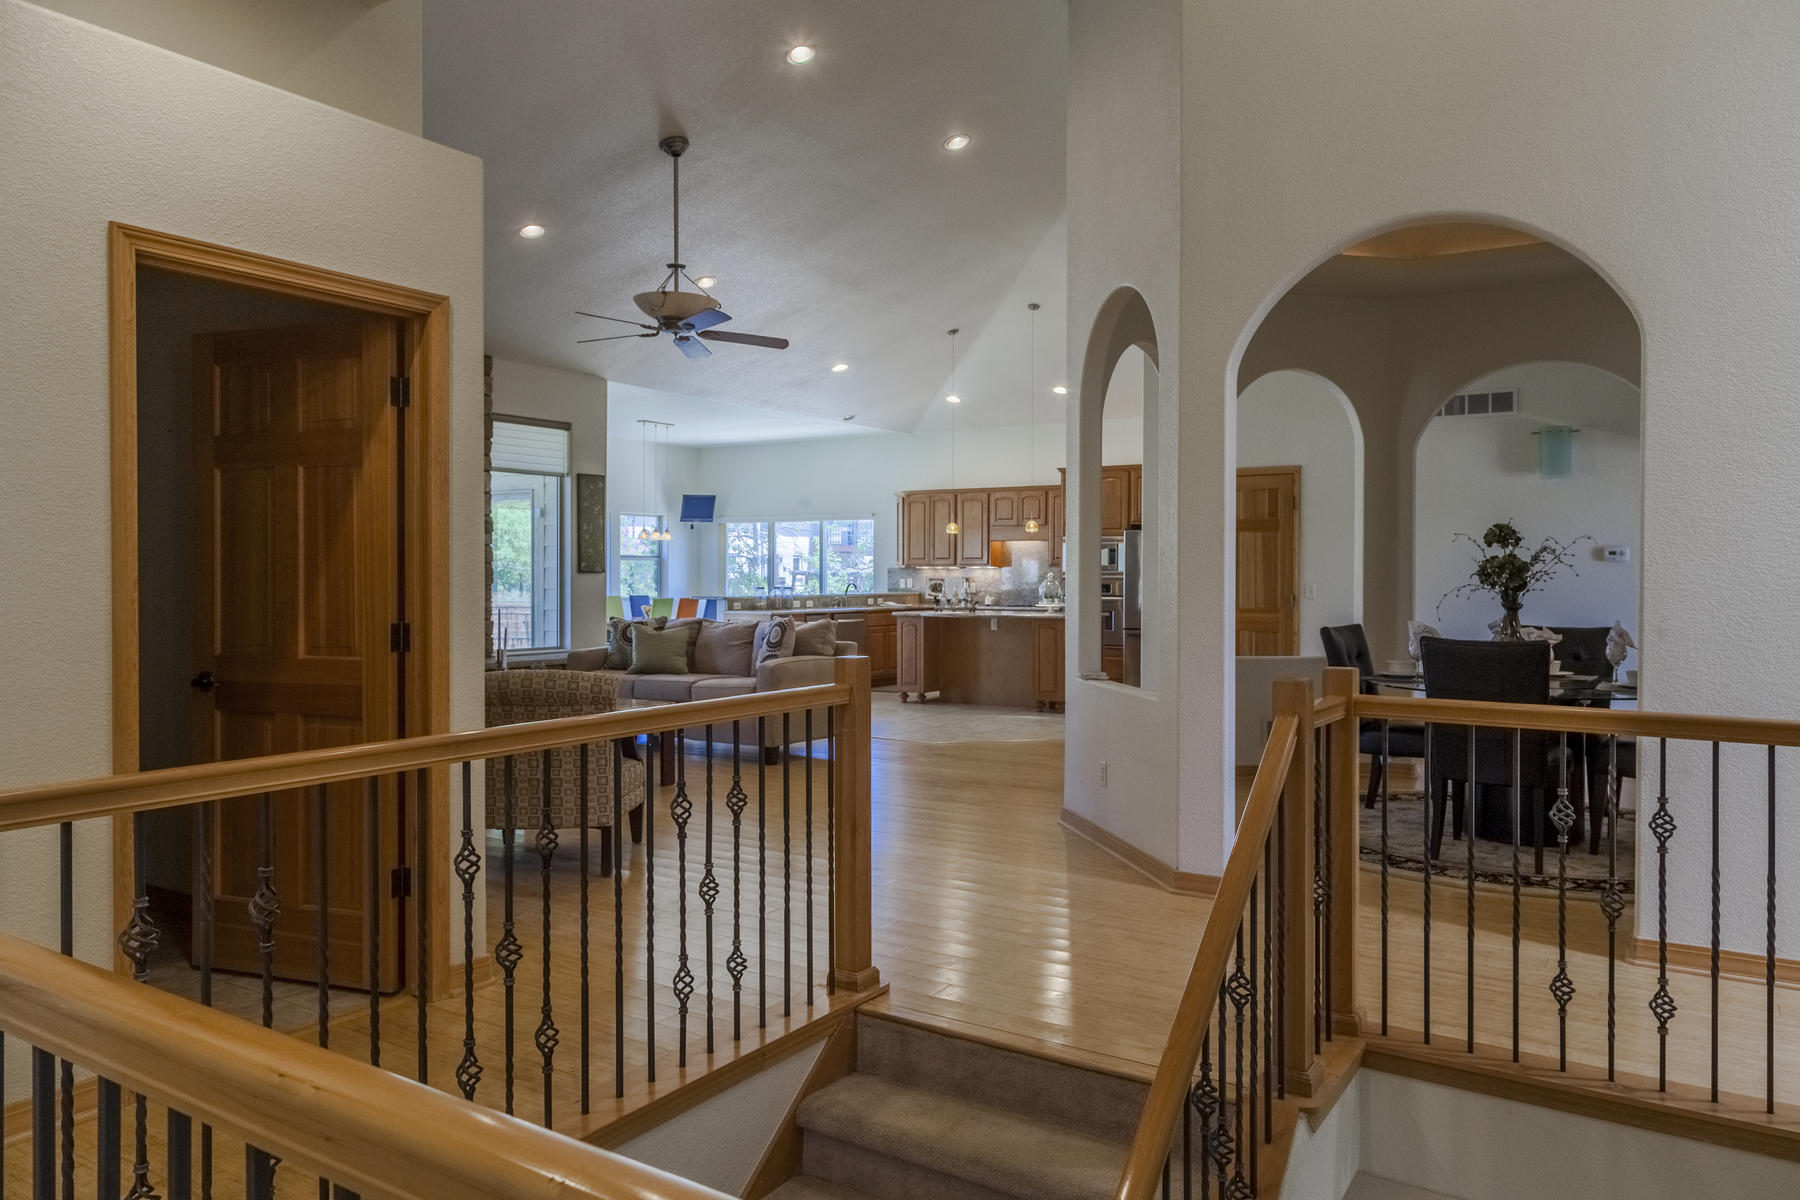 Additional photo for property listing at This Custom Home Is A Designers Masterpiece 7052 Vance Street Arvada, Colorado 80003 United States